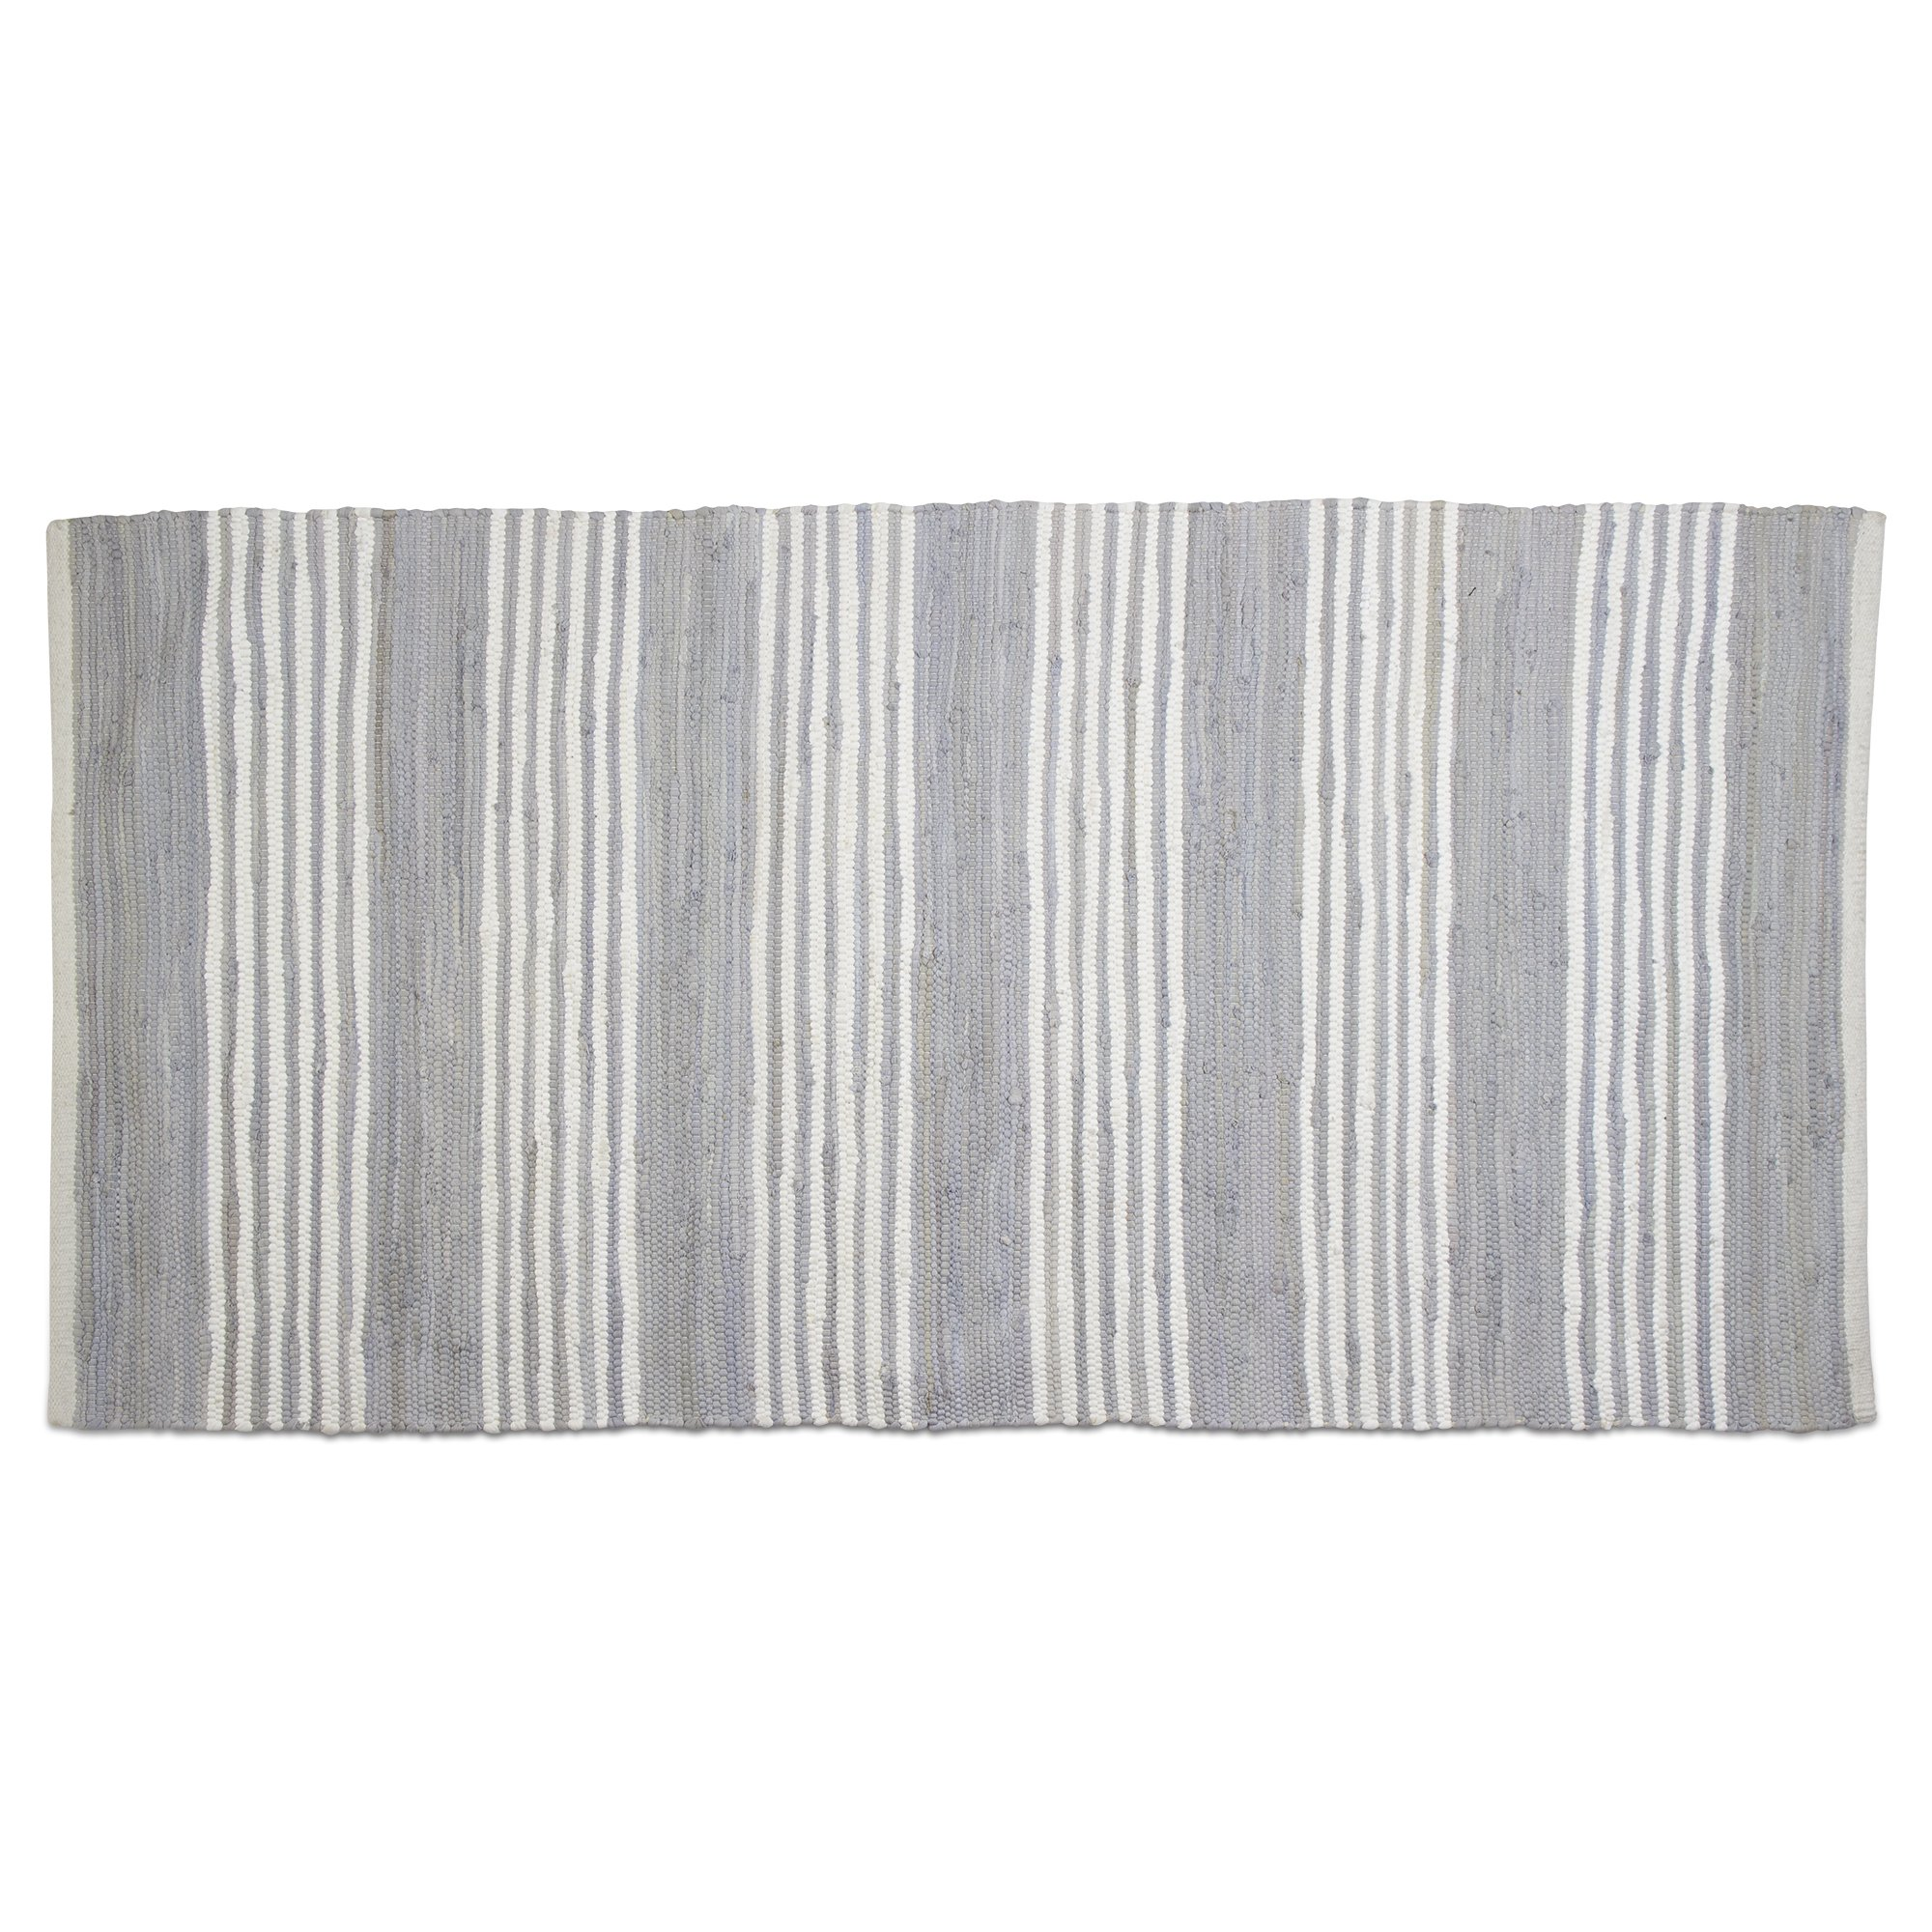 tag - Chindi Stripe Runner Rug, Add Some Style to Your Home, Light Blue (60'' x 30'')